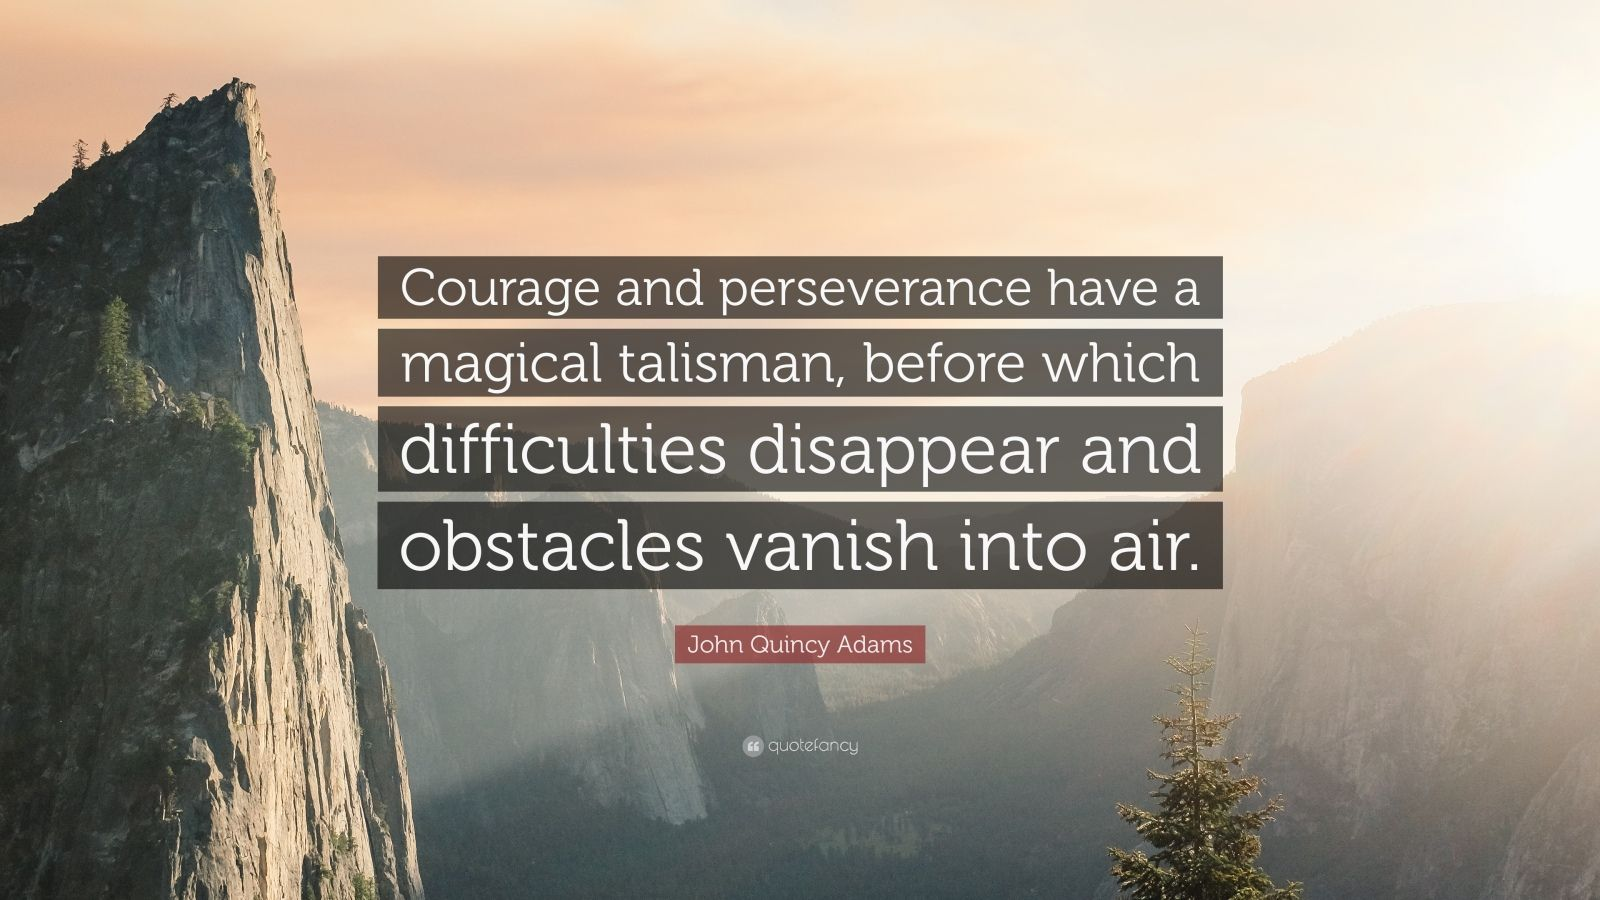 Steve Jobs Wallpaper Quotes John Quincy Adams Quote Courage And Perseverance Have A